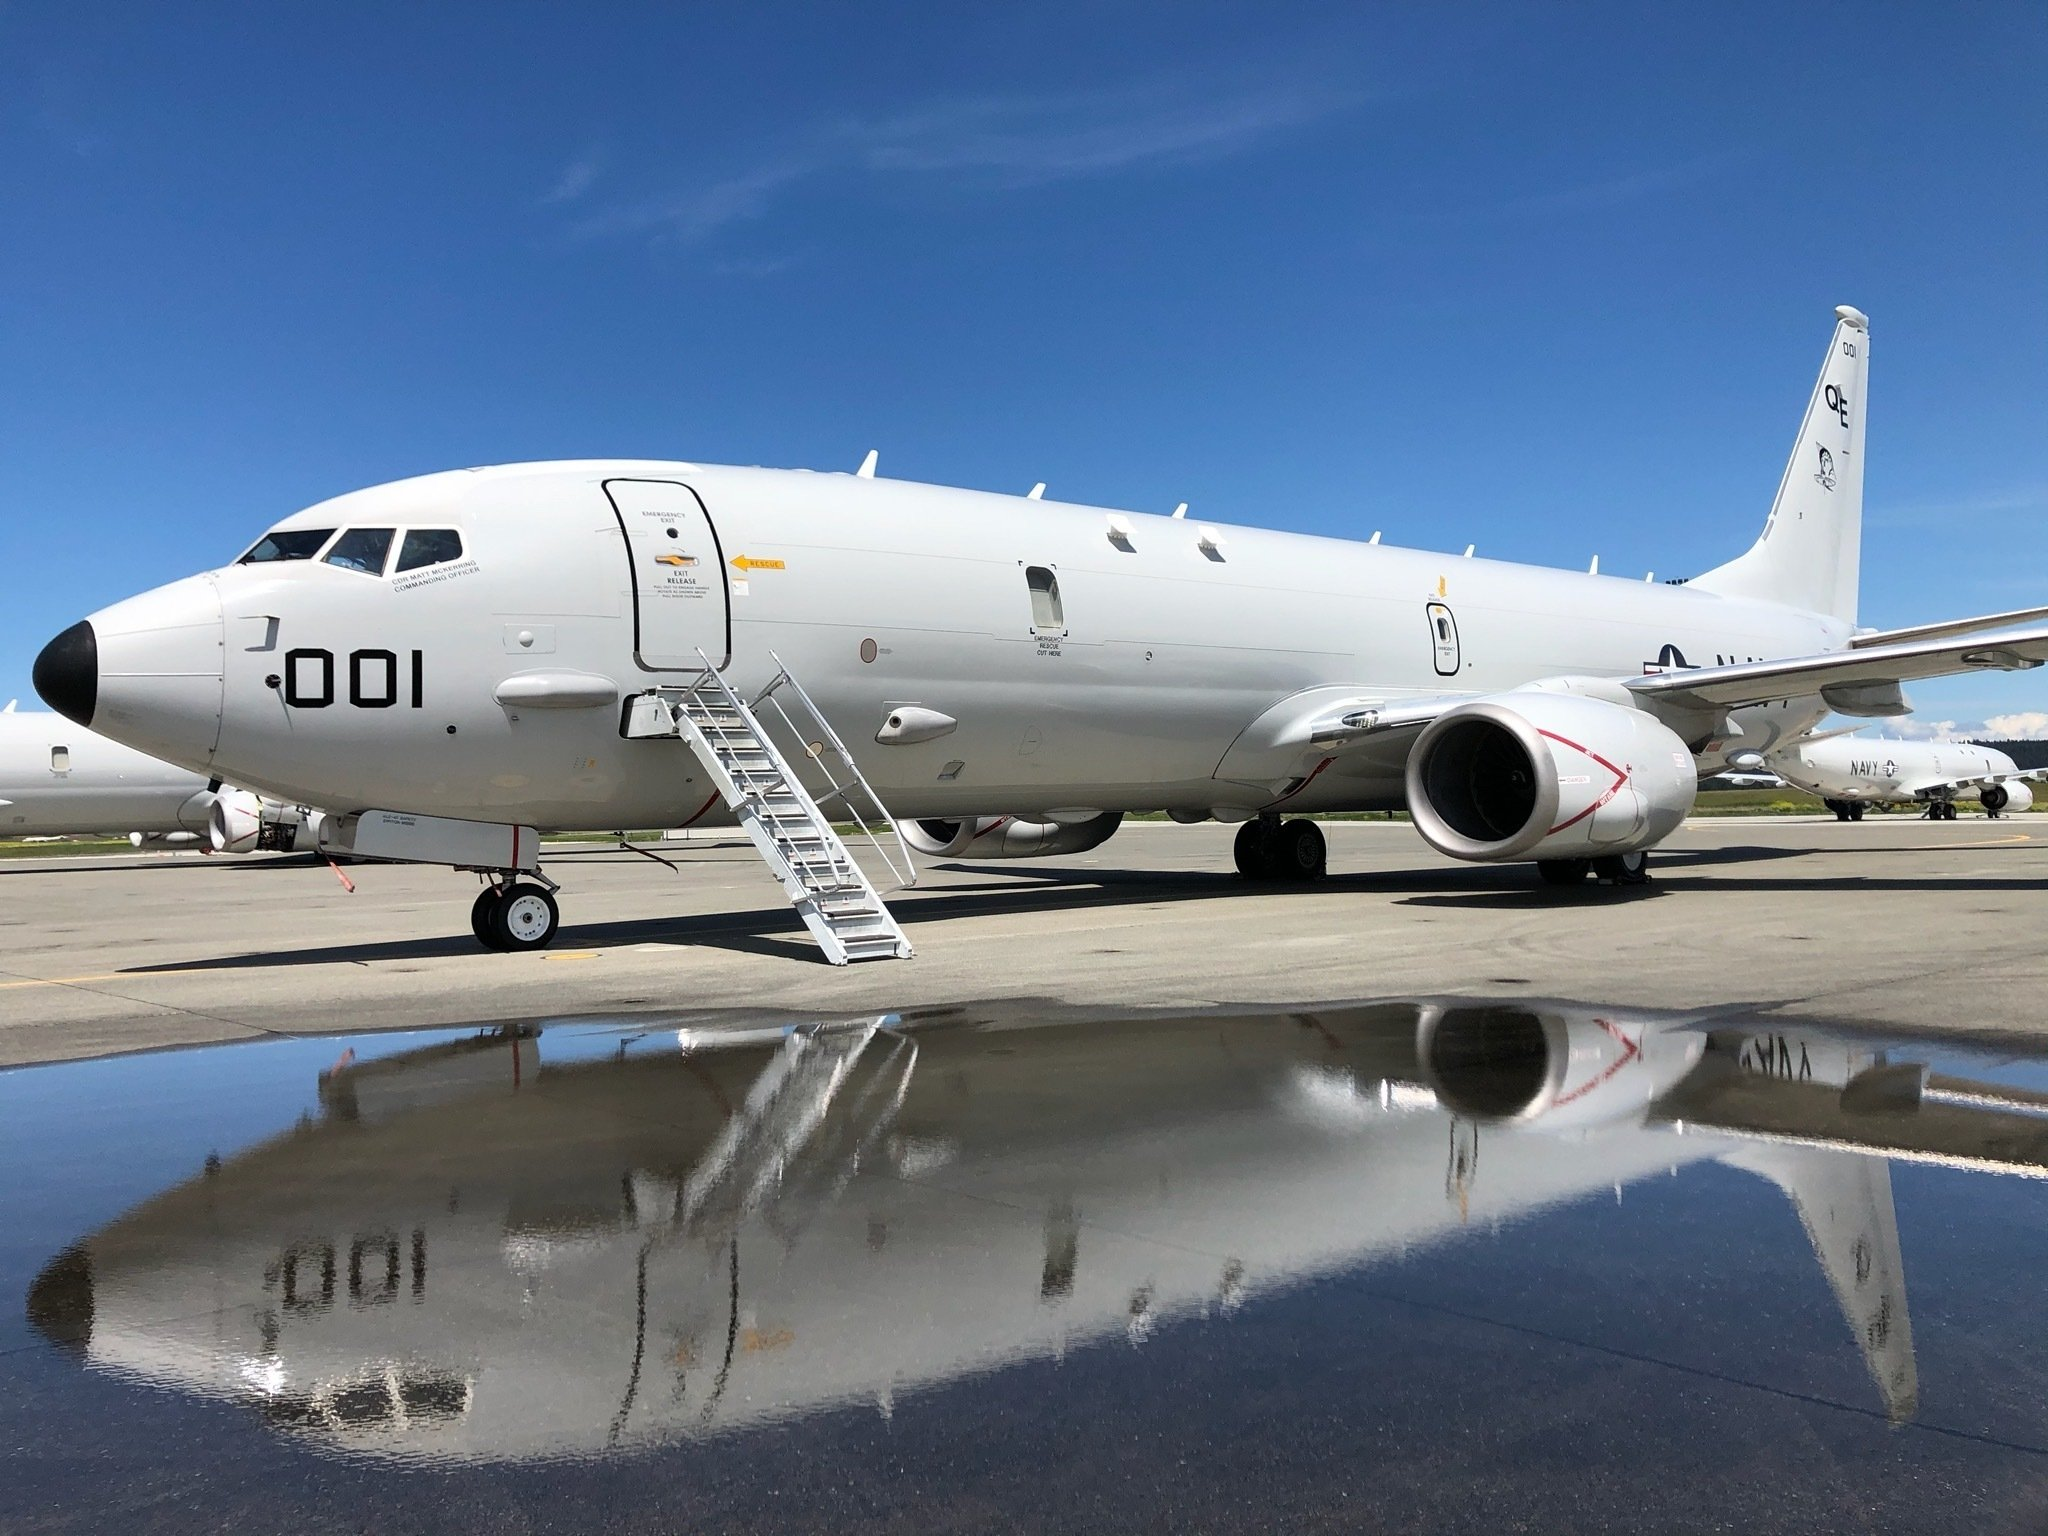 VP-40 P-8A Poseidon at NAS Whidbey Island May 2020 [US Navy/CMDR Joseph Parsons]